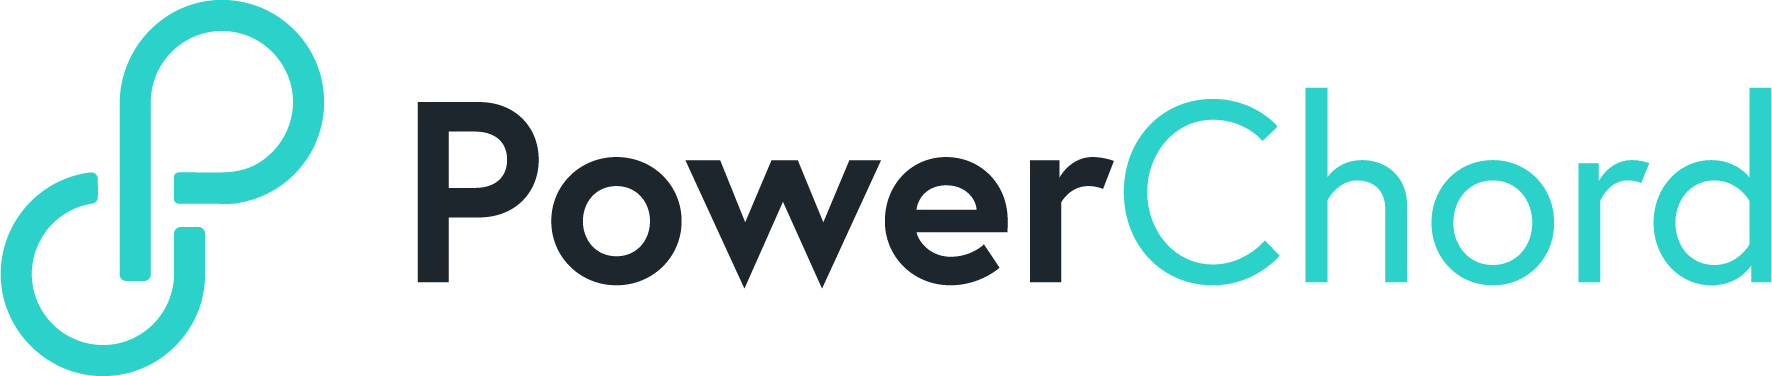 PowerChord Expands TCMA Platform Features, Offers New Consulting Service